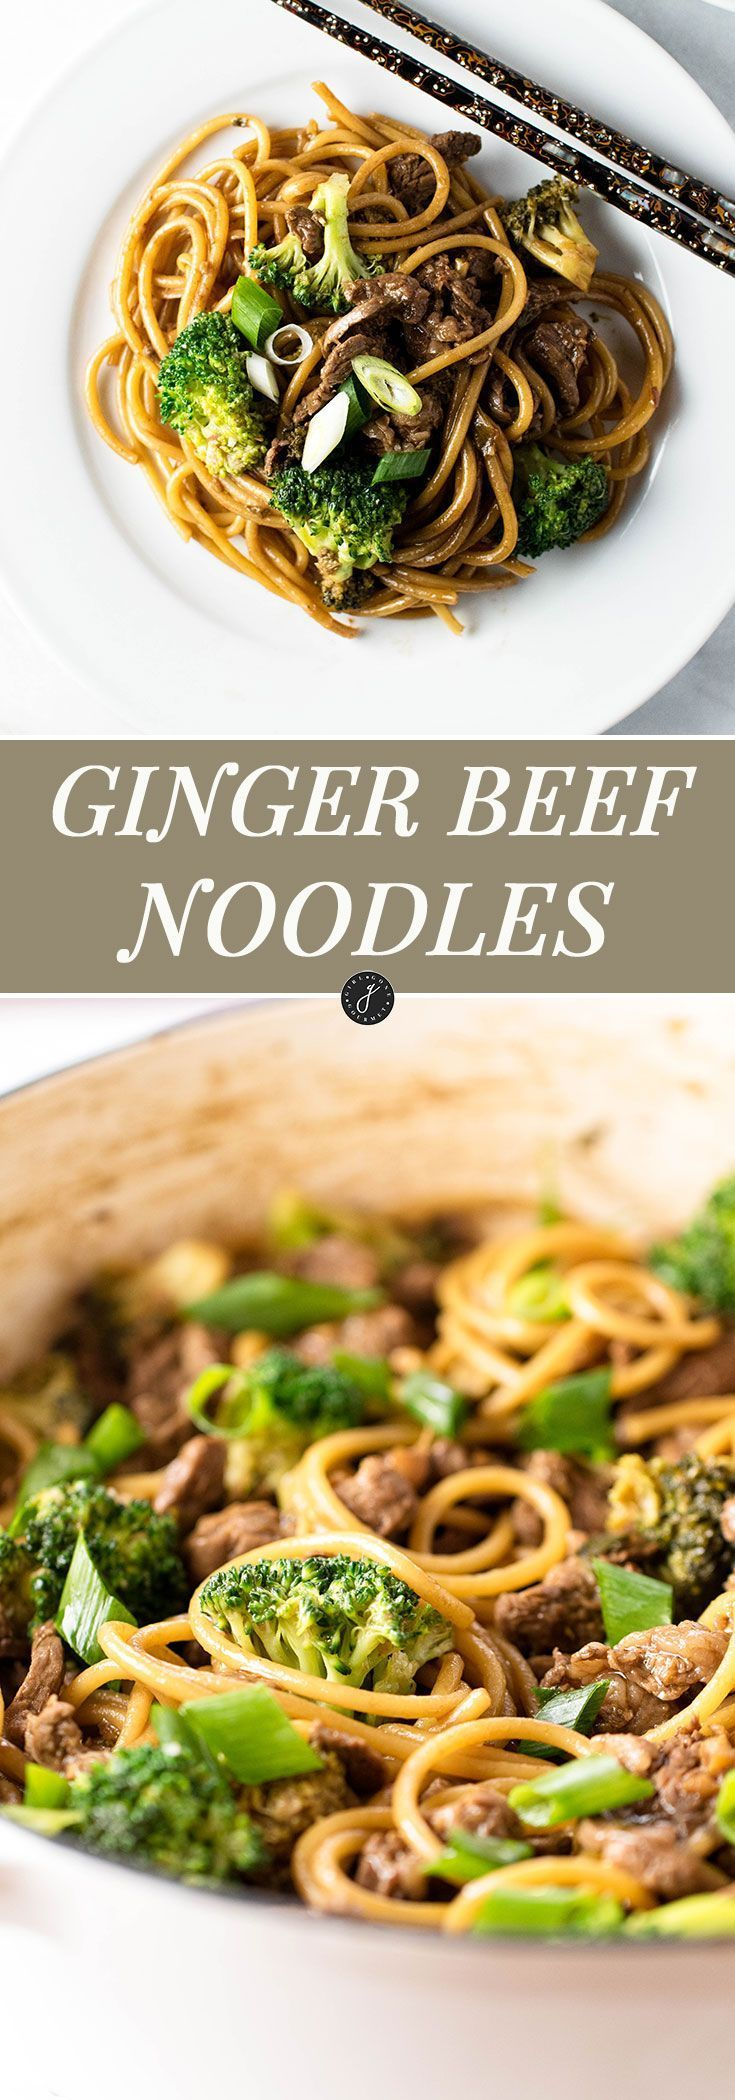 30-Minutes is all you need for these ginger beef noodles | http://girlgonegourmet.com via /april7116/